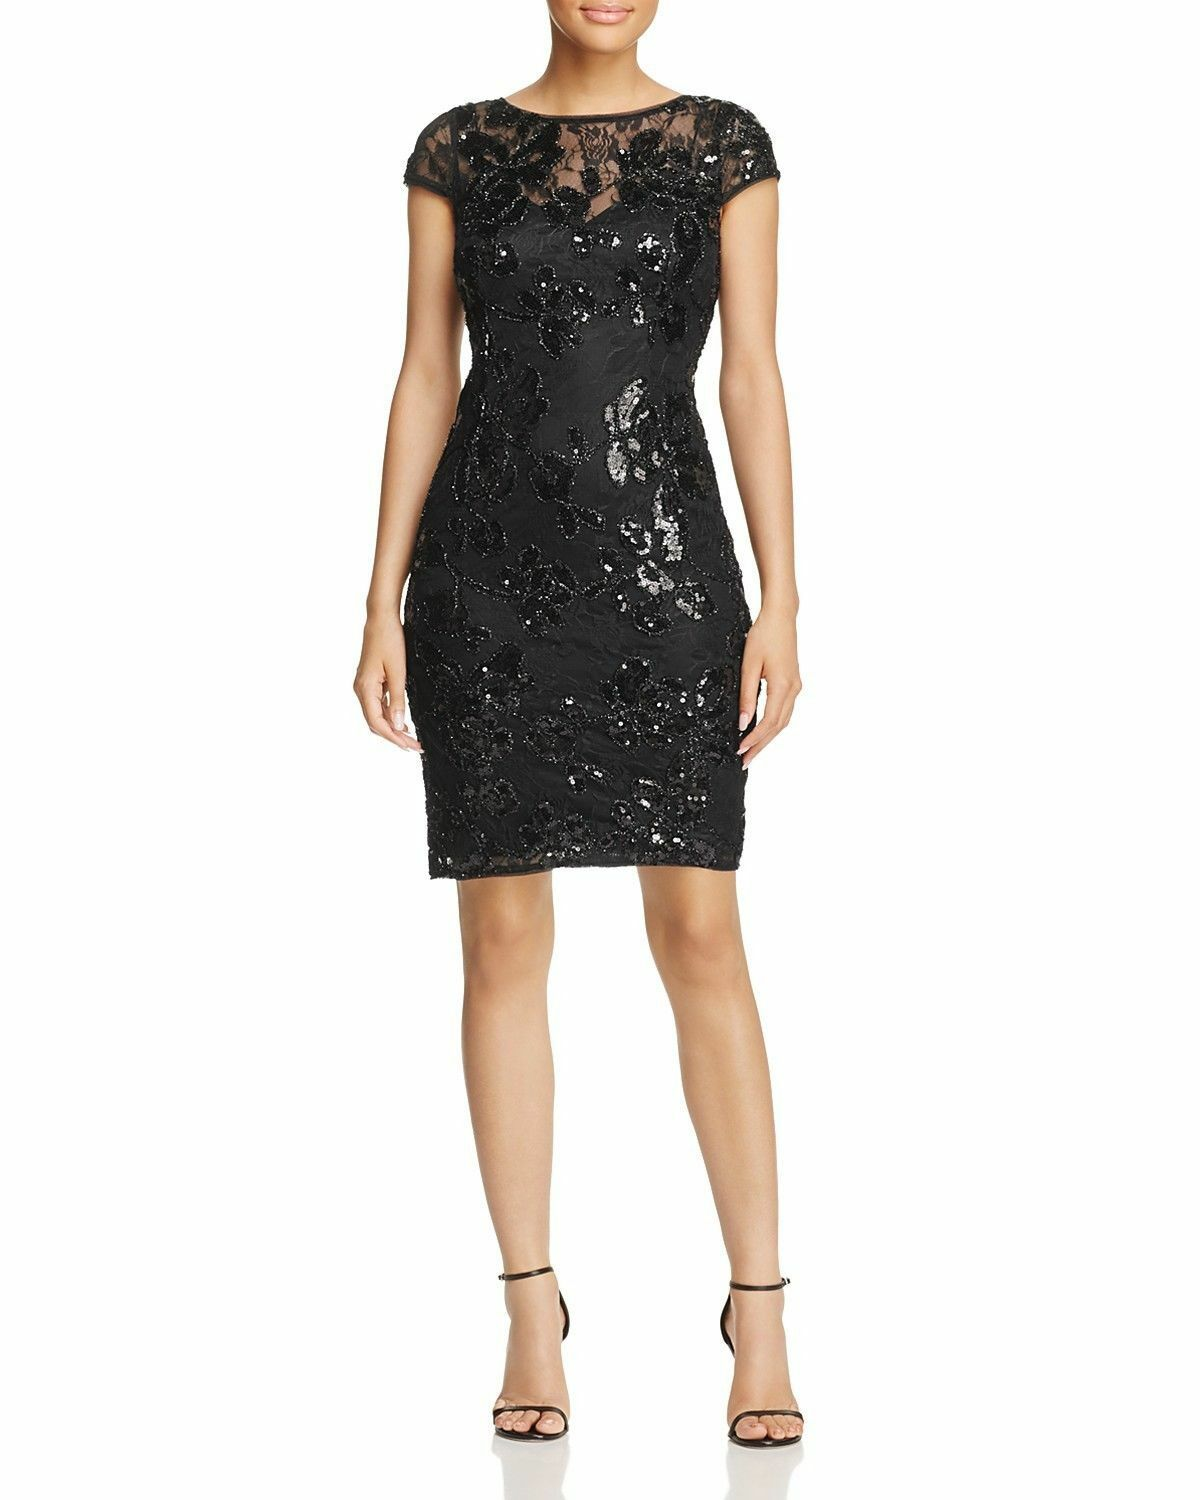 Adrianna Papell Sequined Lace Sheath Dress MSRP  Size 12 JN 794 NEW